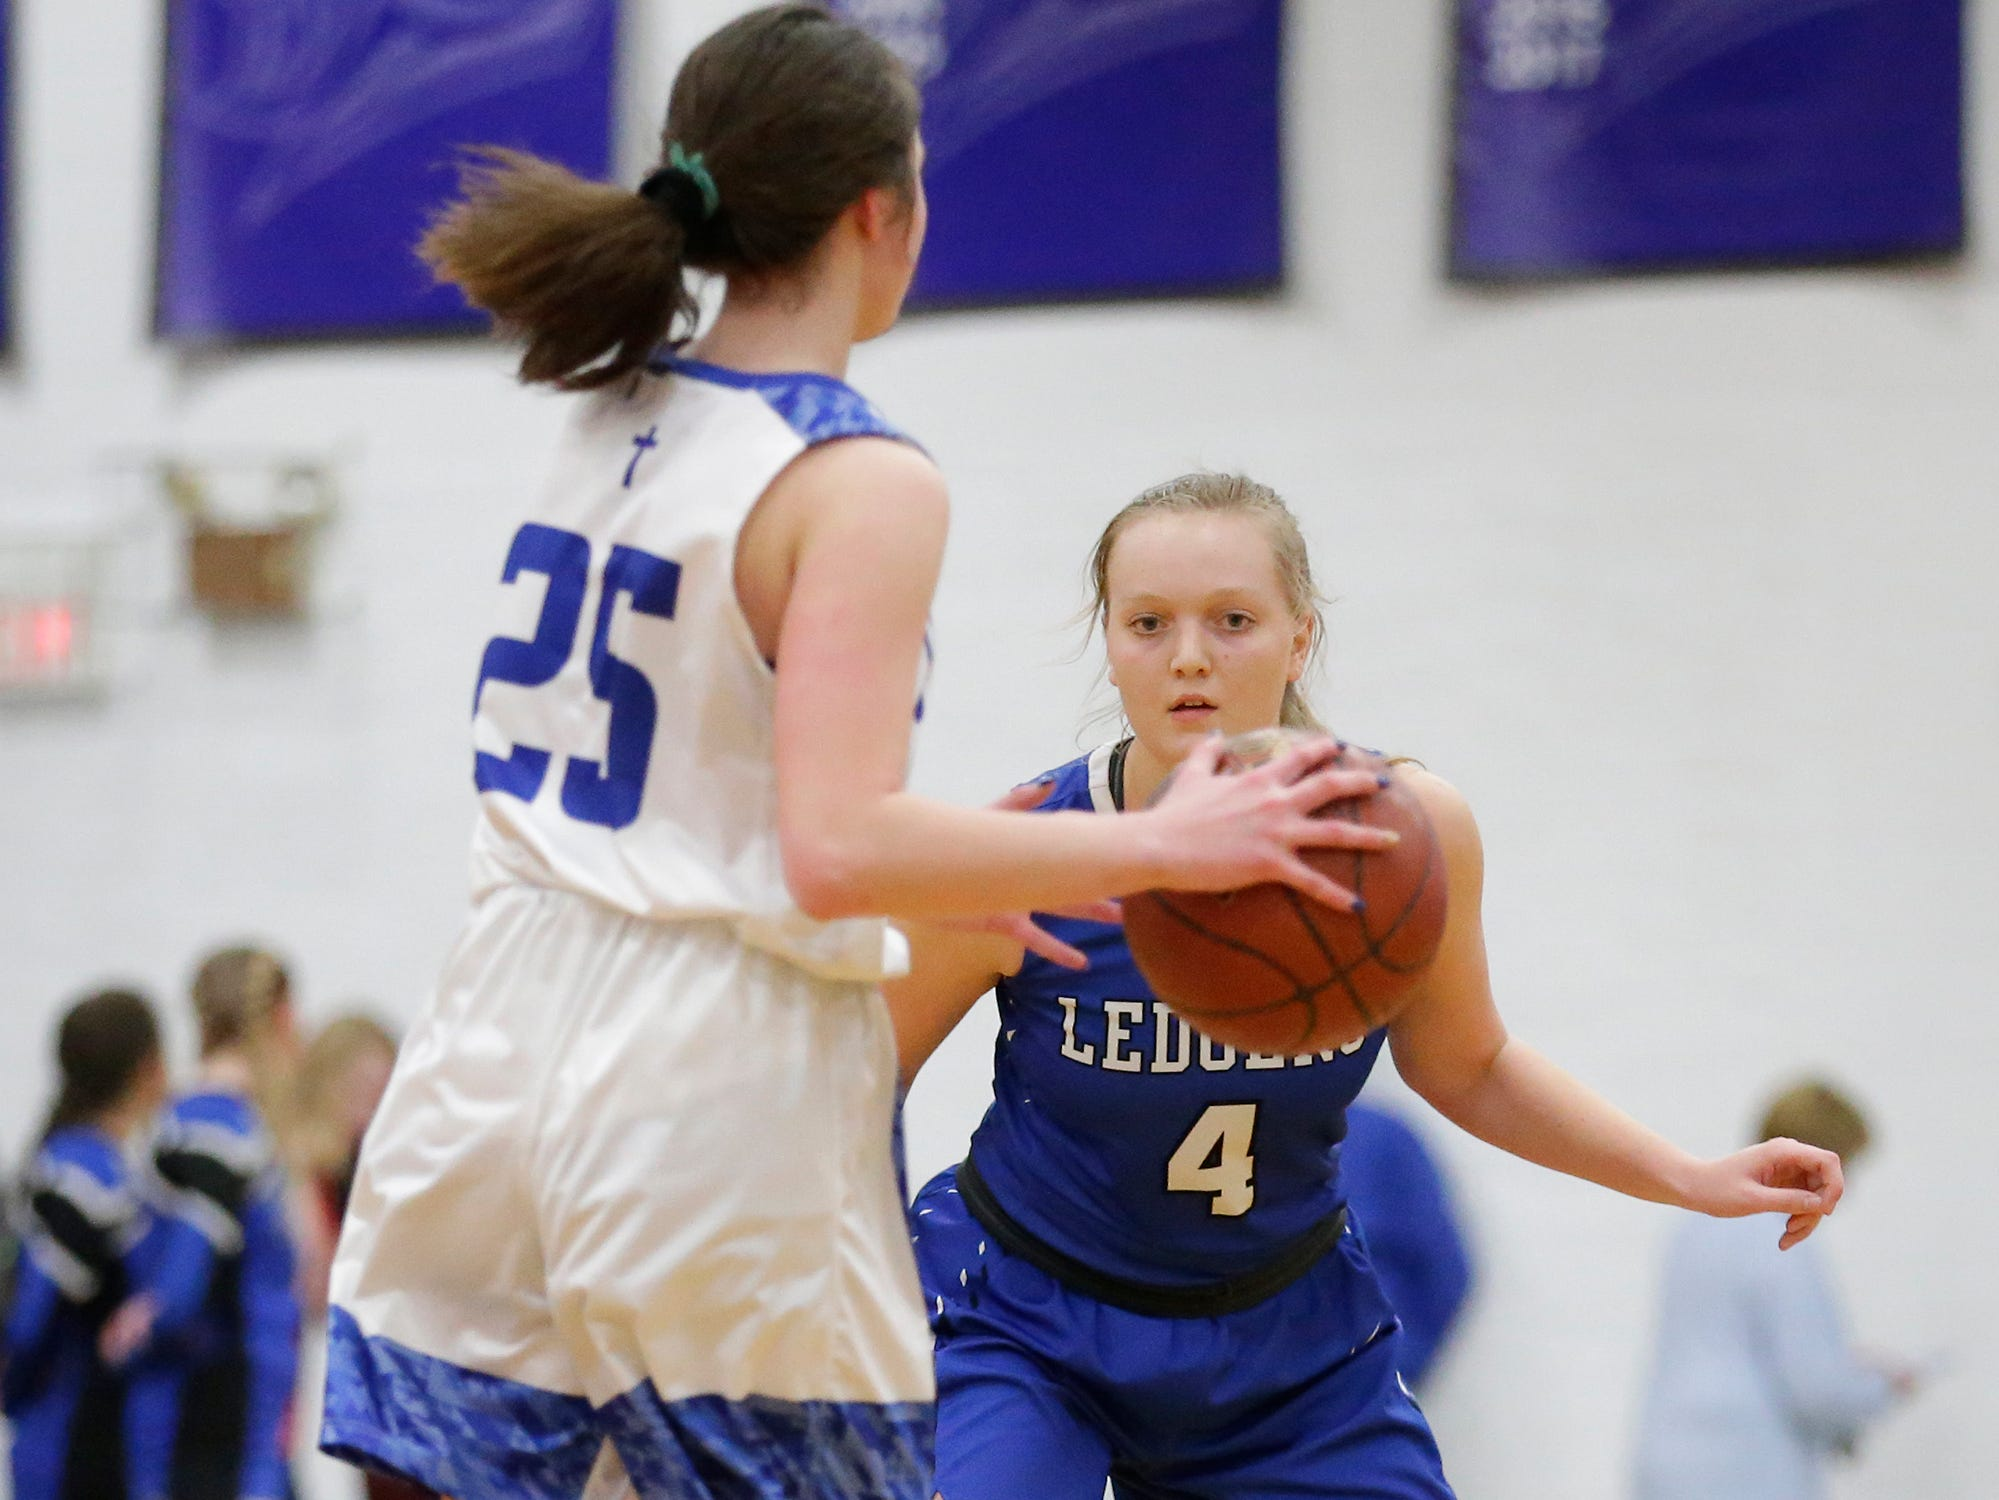 St. Mary's Springs Academy girls basketball's Brianna Freund defends Winnebago Lutheran Academy's Geneva Hewitt during their game Tuesday, February 5, 2019 in Fond du Lac, Wisconsin. Winnebago Lutheran won the game 44-35. Doug Raflik/USA TODAY NETWORK-Wisconsin